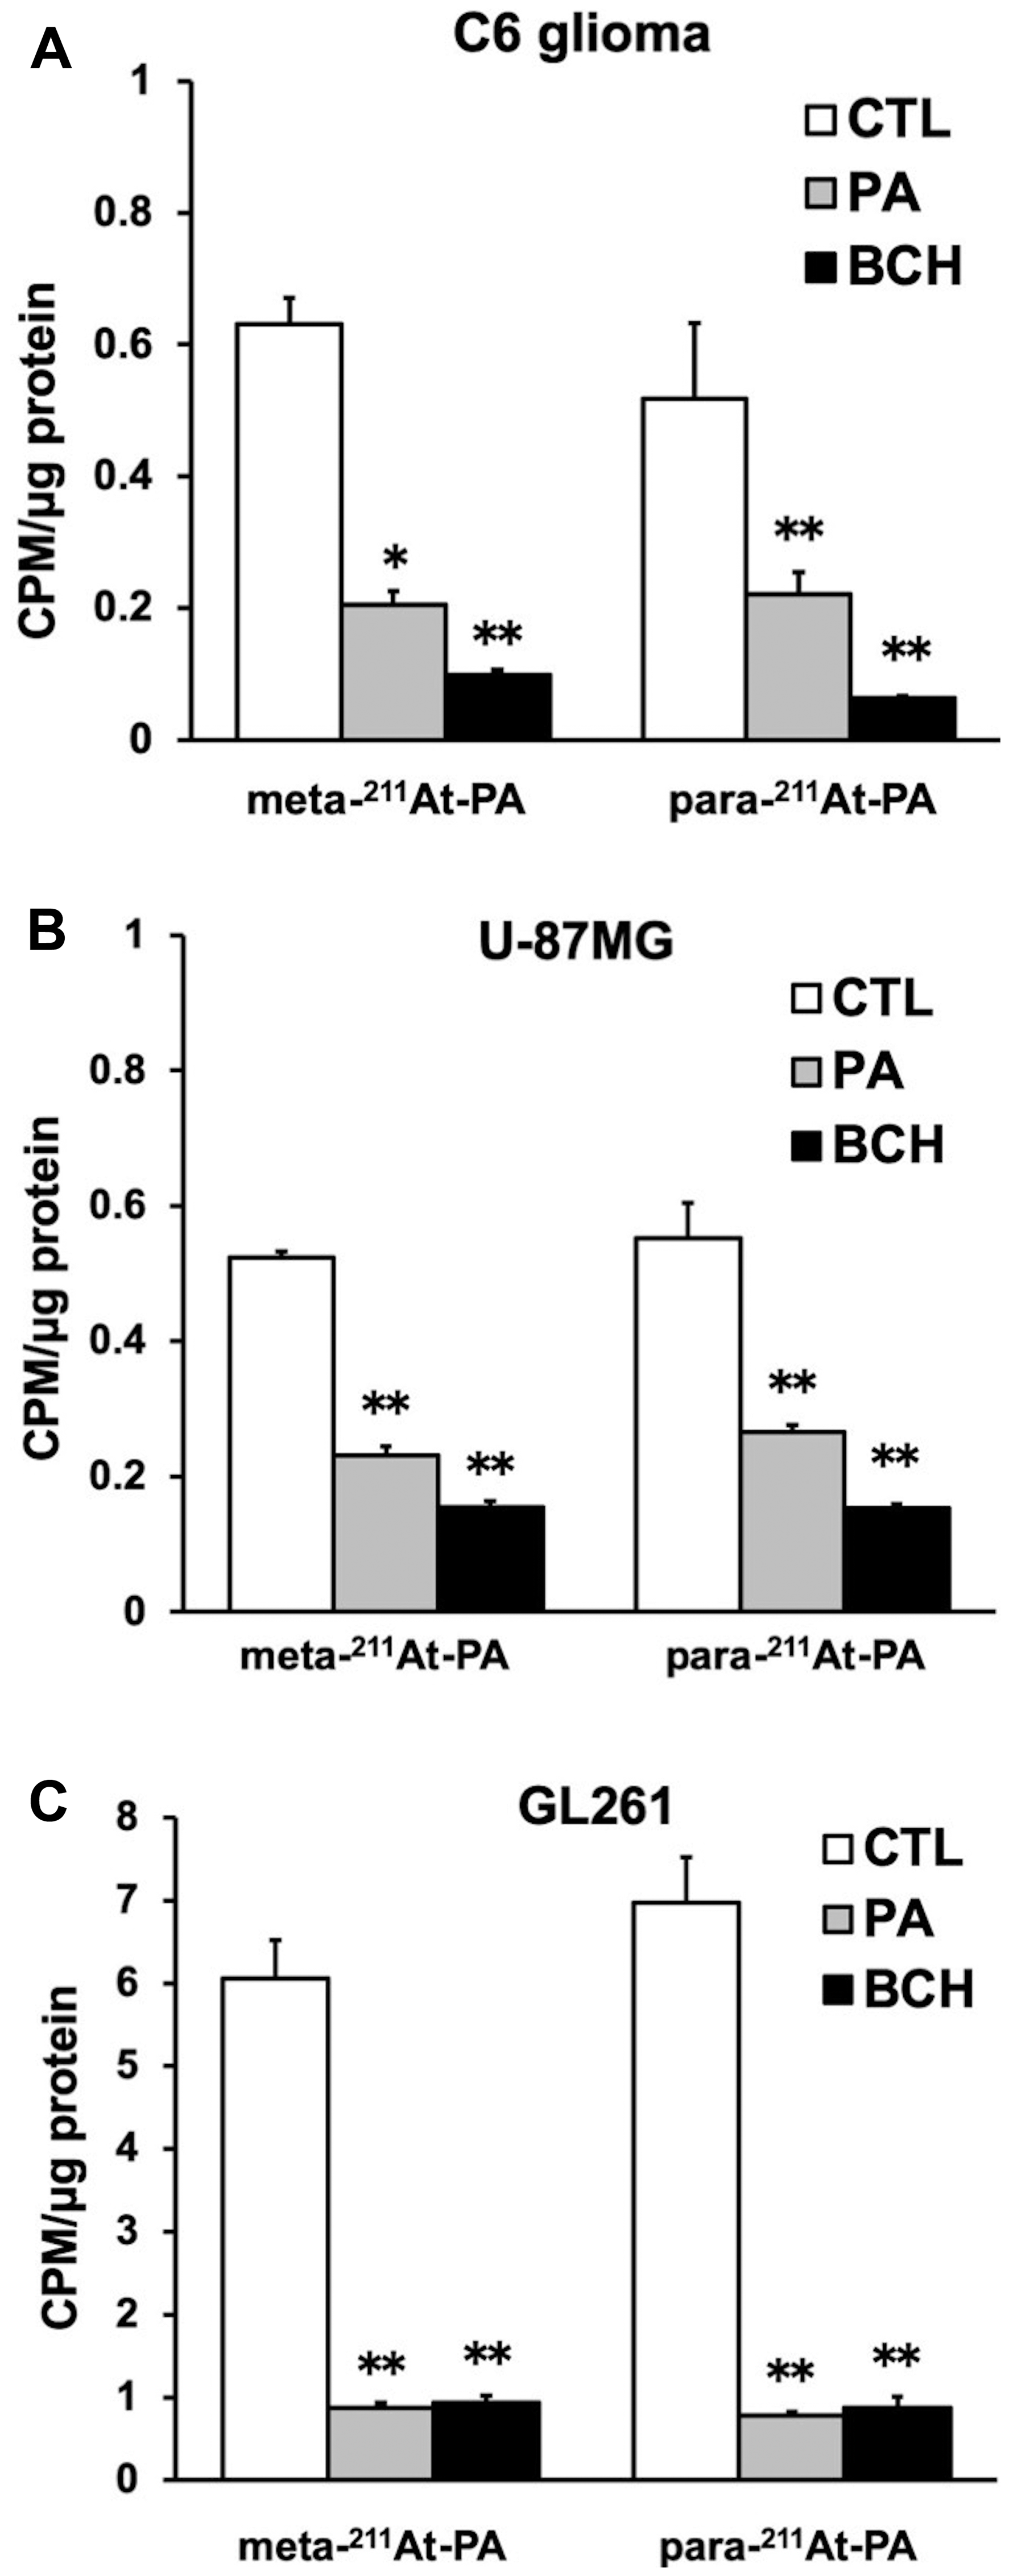 Meta- and para- 211At-PA transport in an in vitro cellular uptake and inhibition assay conducted in the absence or presence of 1 mM non-radiolabeled phenylalanine (PA) or 20 mM 2-aminobicyclo-(2,2,1)-heptane-2-carboxylic acid (BCH; system L amino acid transporter inhibitor).